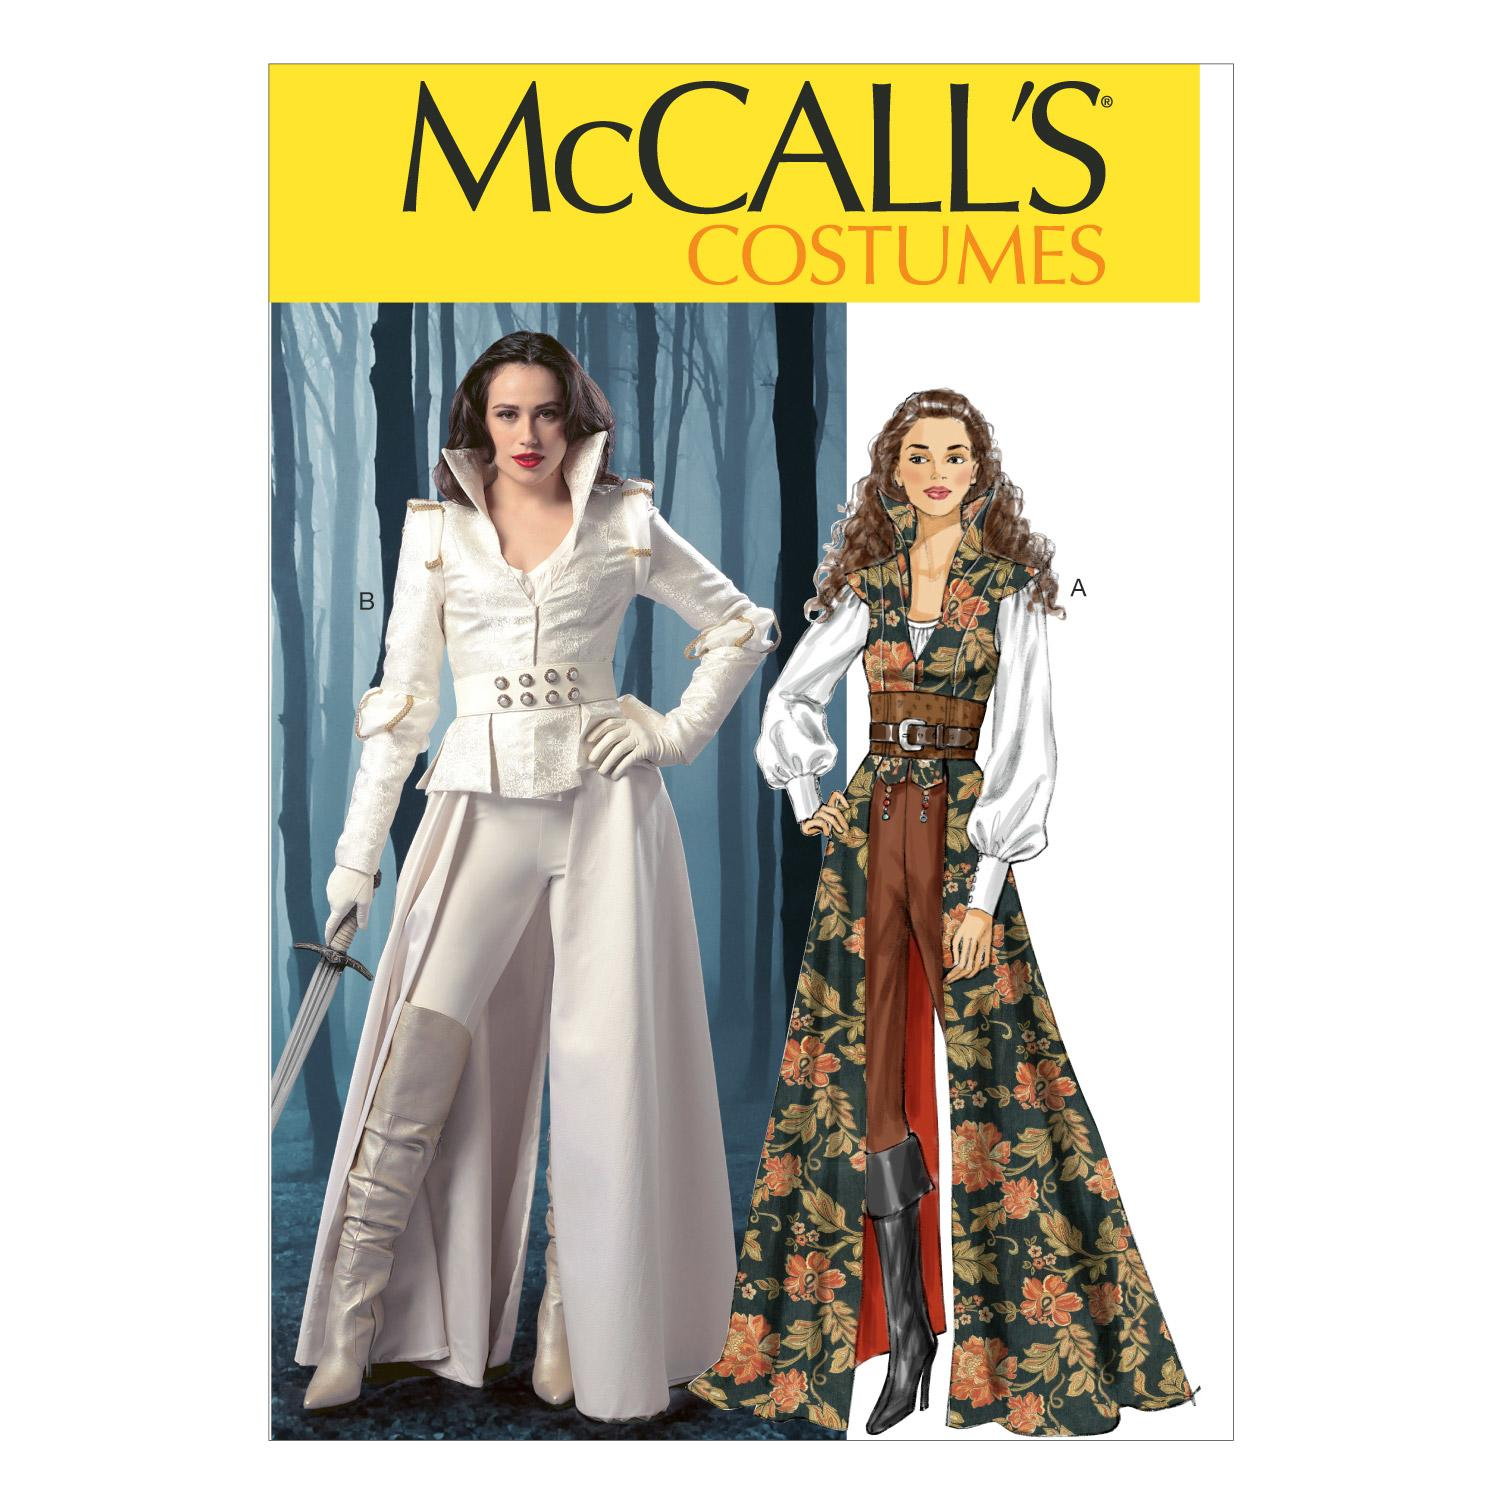 McCalls M6819 Accessories, Coats, Corsets, Costumes, Halloween, Tops, Shirts & Tunics